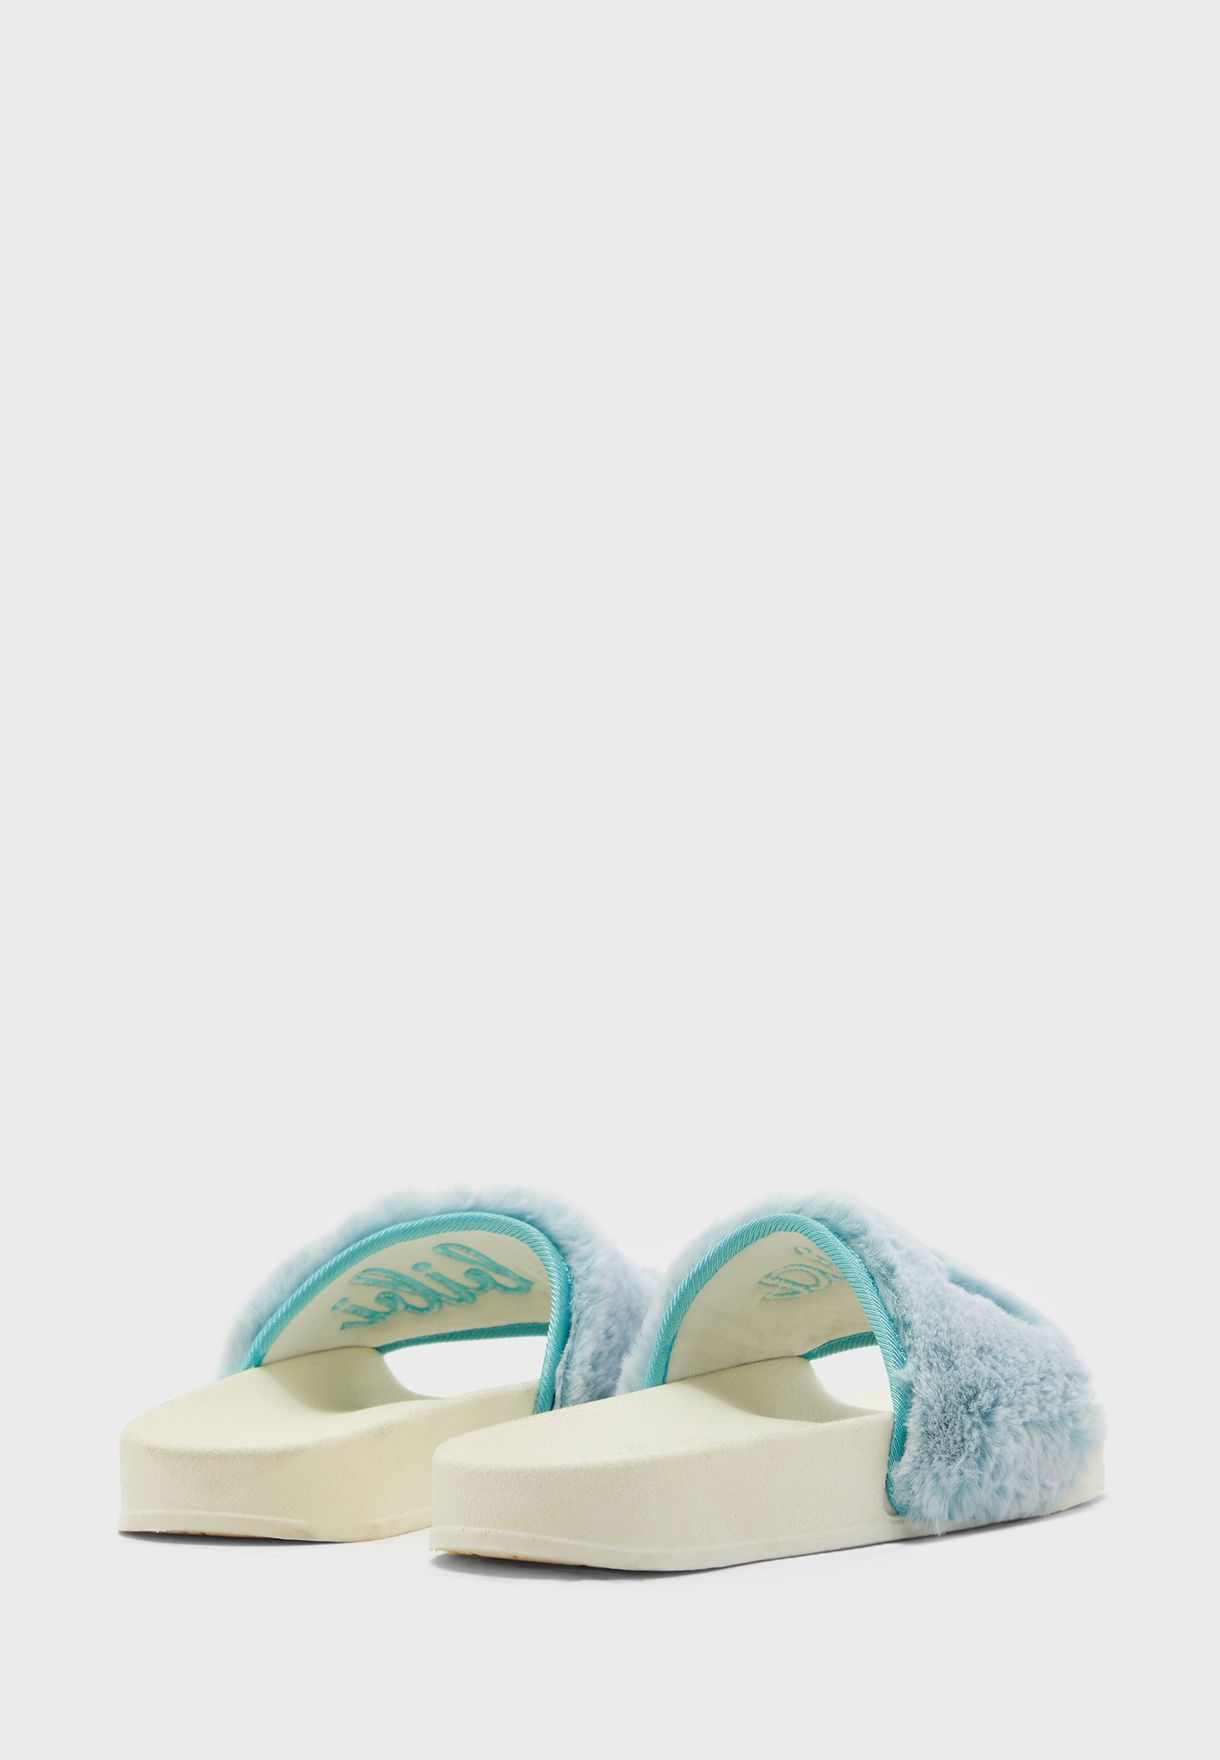 Coco Furry Message Slides - Brand Shoes